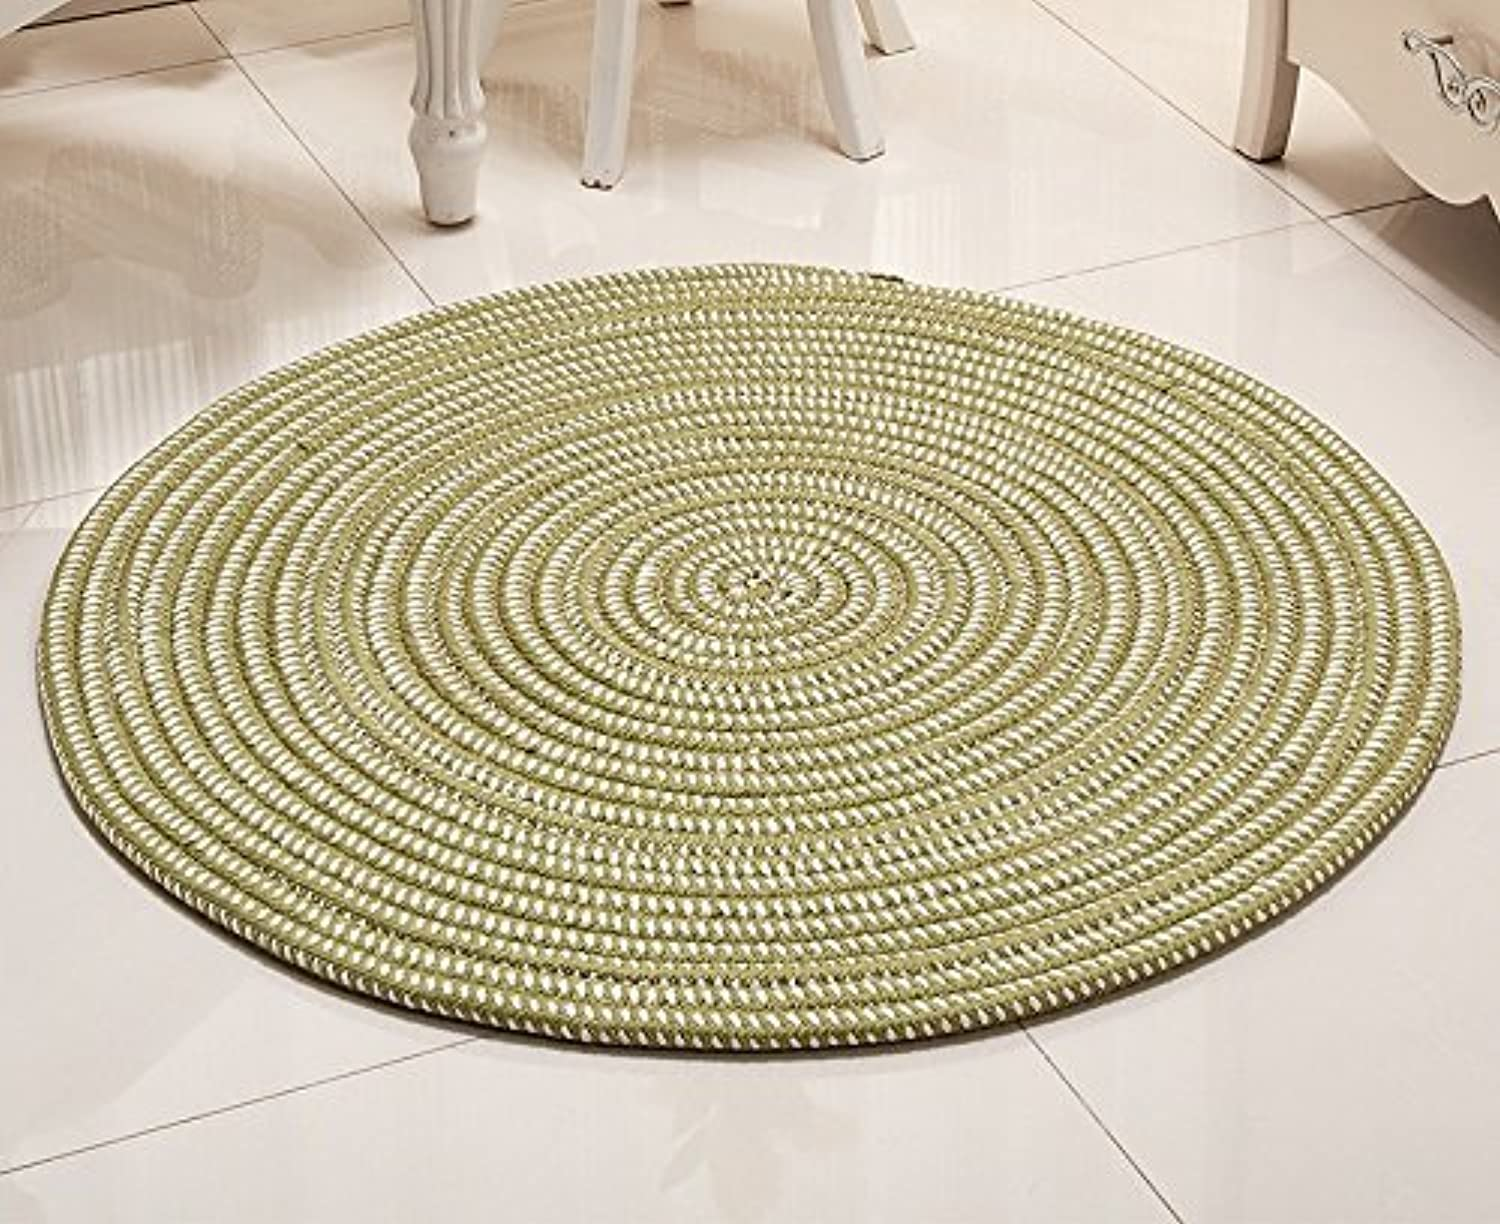 Super - Fiber Rope Series Computer Cushions Rattan Chair Basket Round Carpets Living Room Bedroom Environmental Predection Soft and Comfortable (color    3, Size   Diameter150cm)